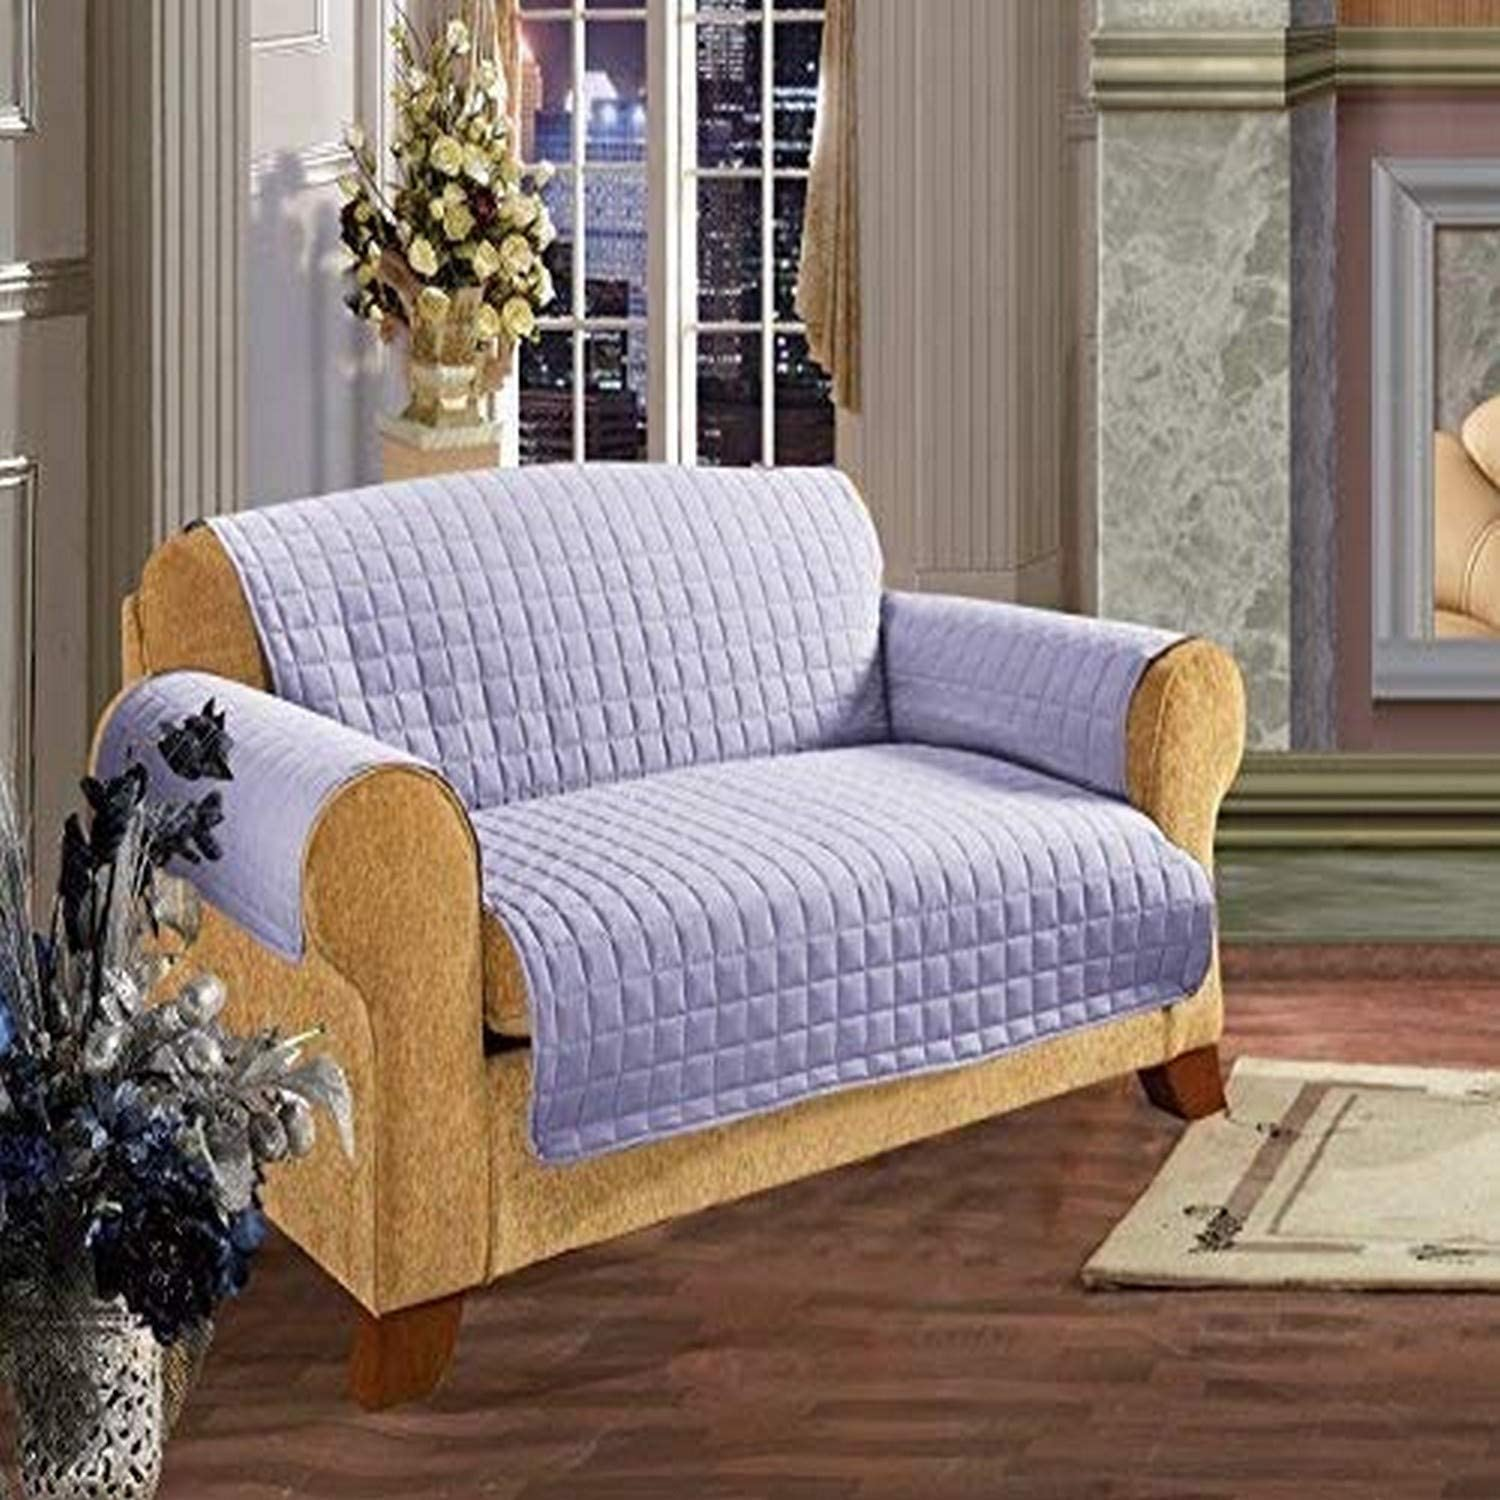 Tulsa Mall Elegance Linen Now free shipping Quilted Pet Dog Kids Furniture Children Protector